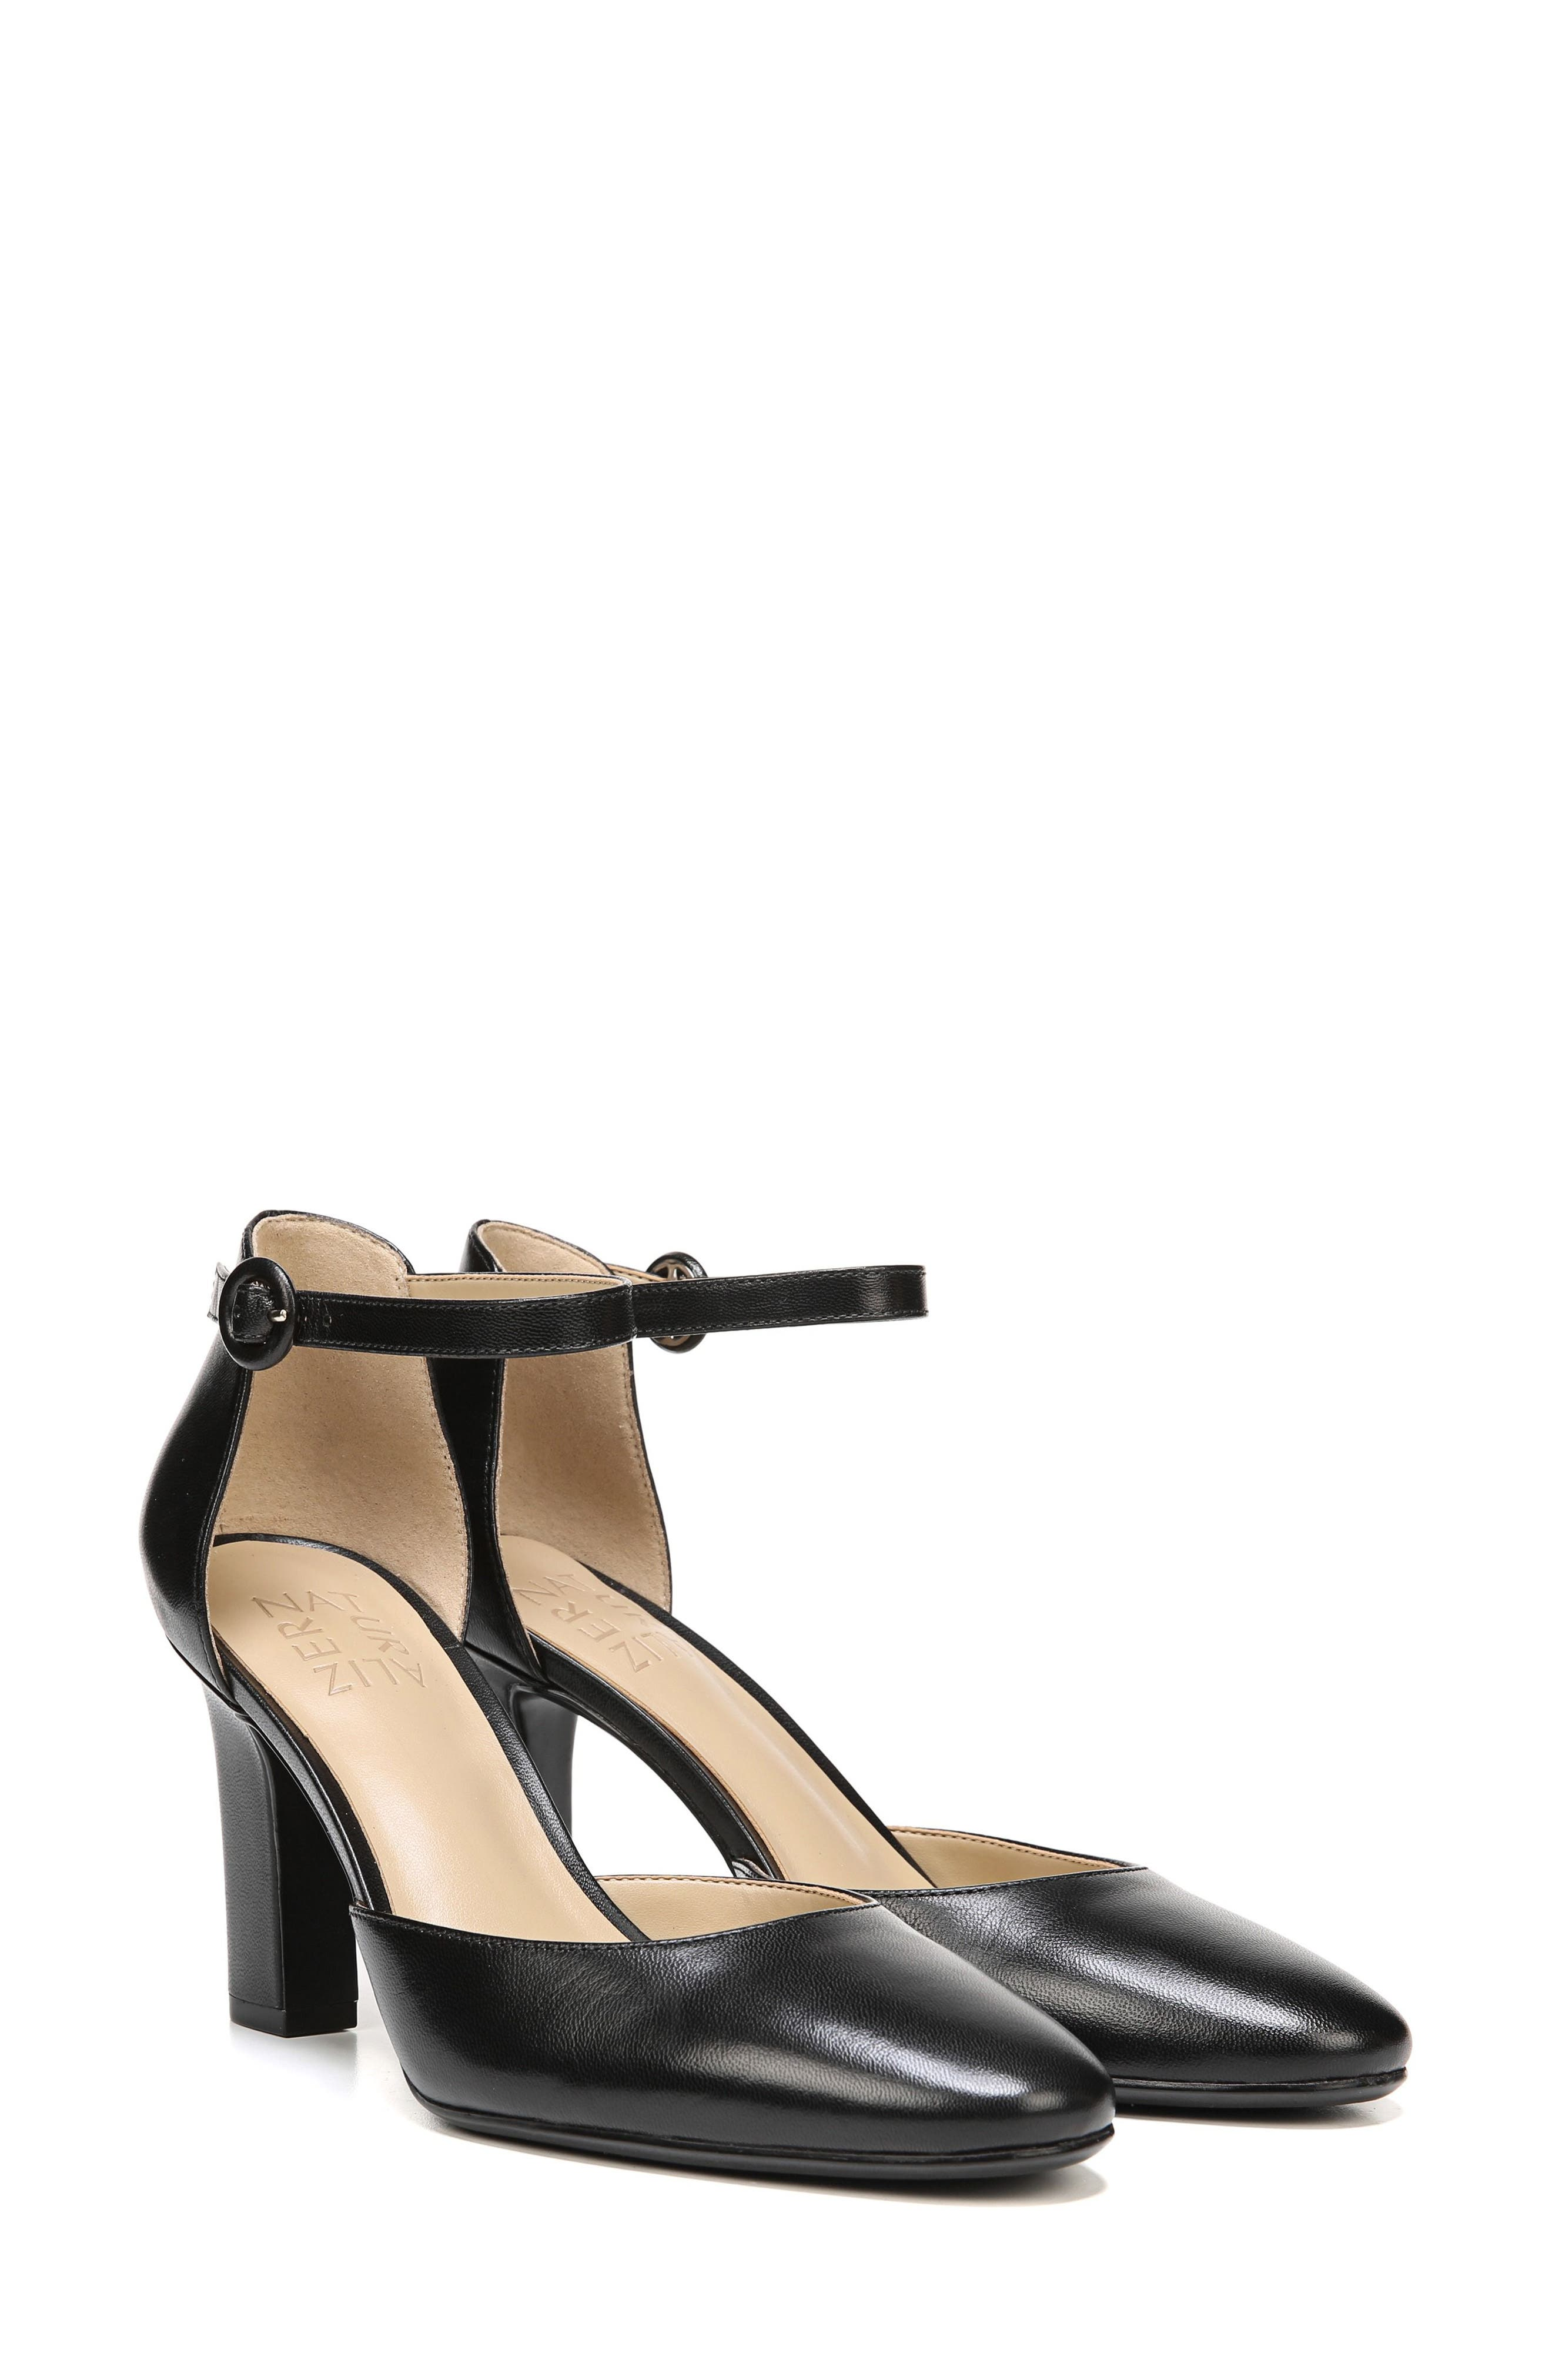 Gianna Ankle Strap Pump,                             Alternate thumbnail 7, color,                             BLACK LEATHER